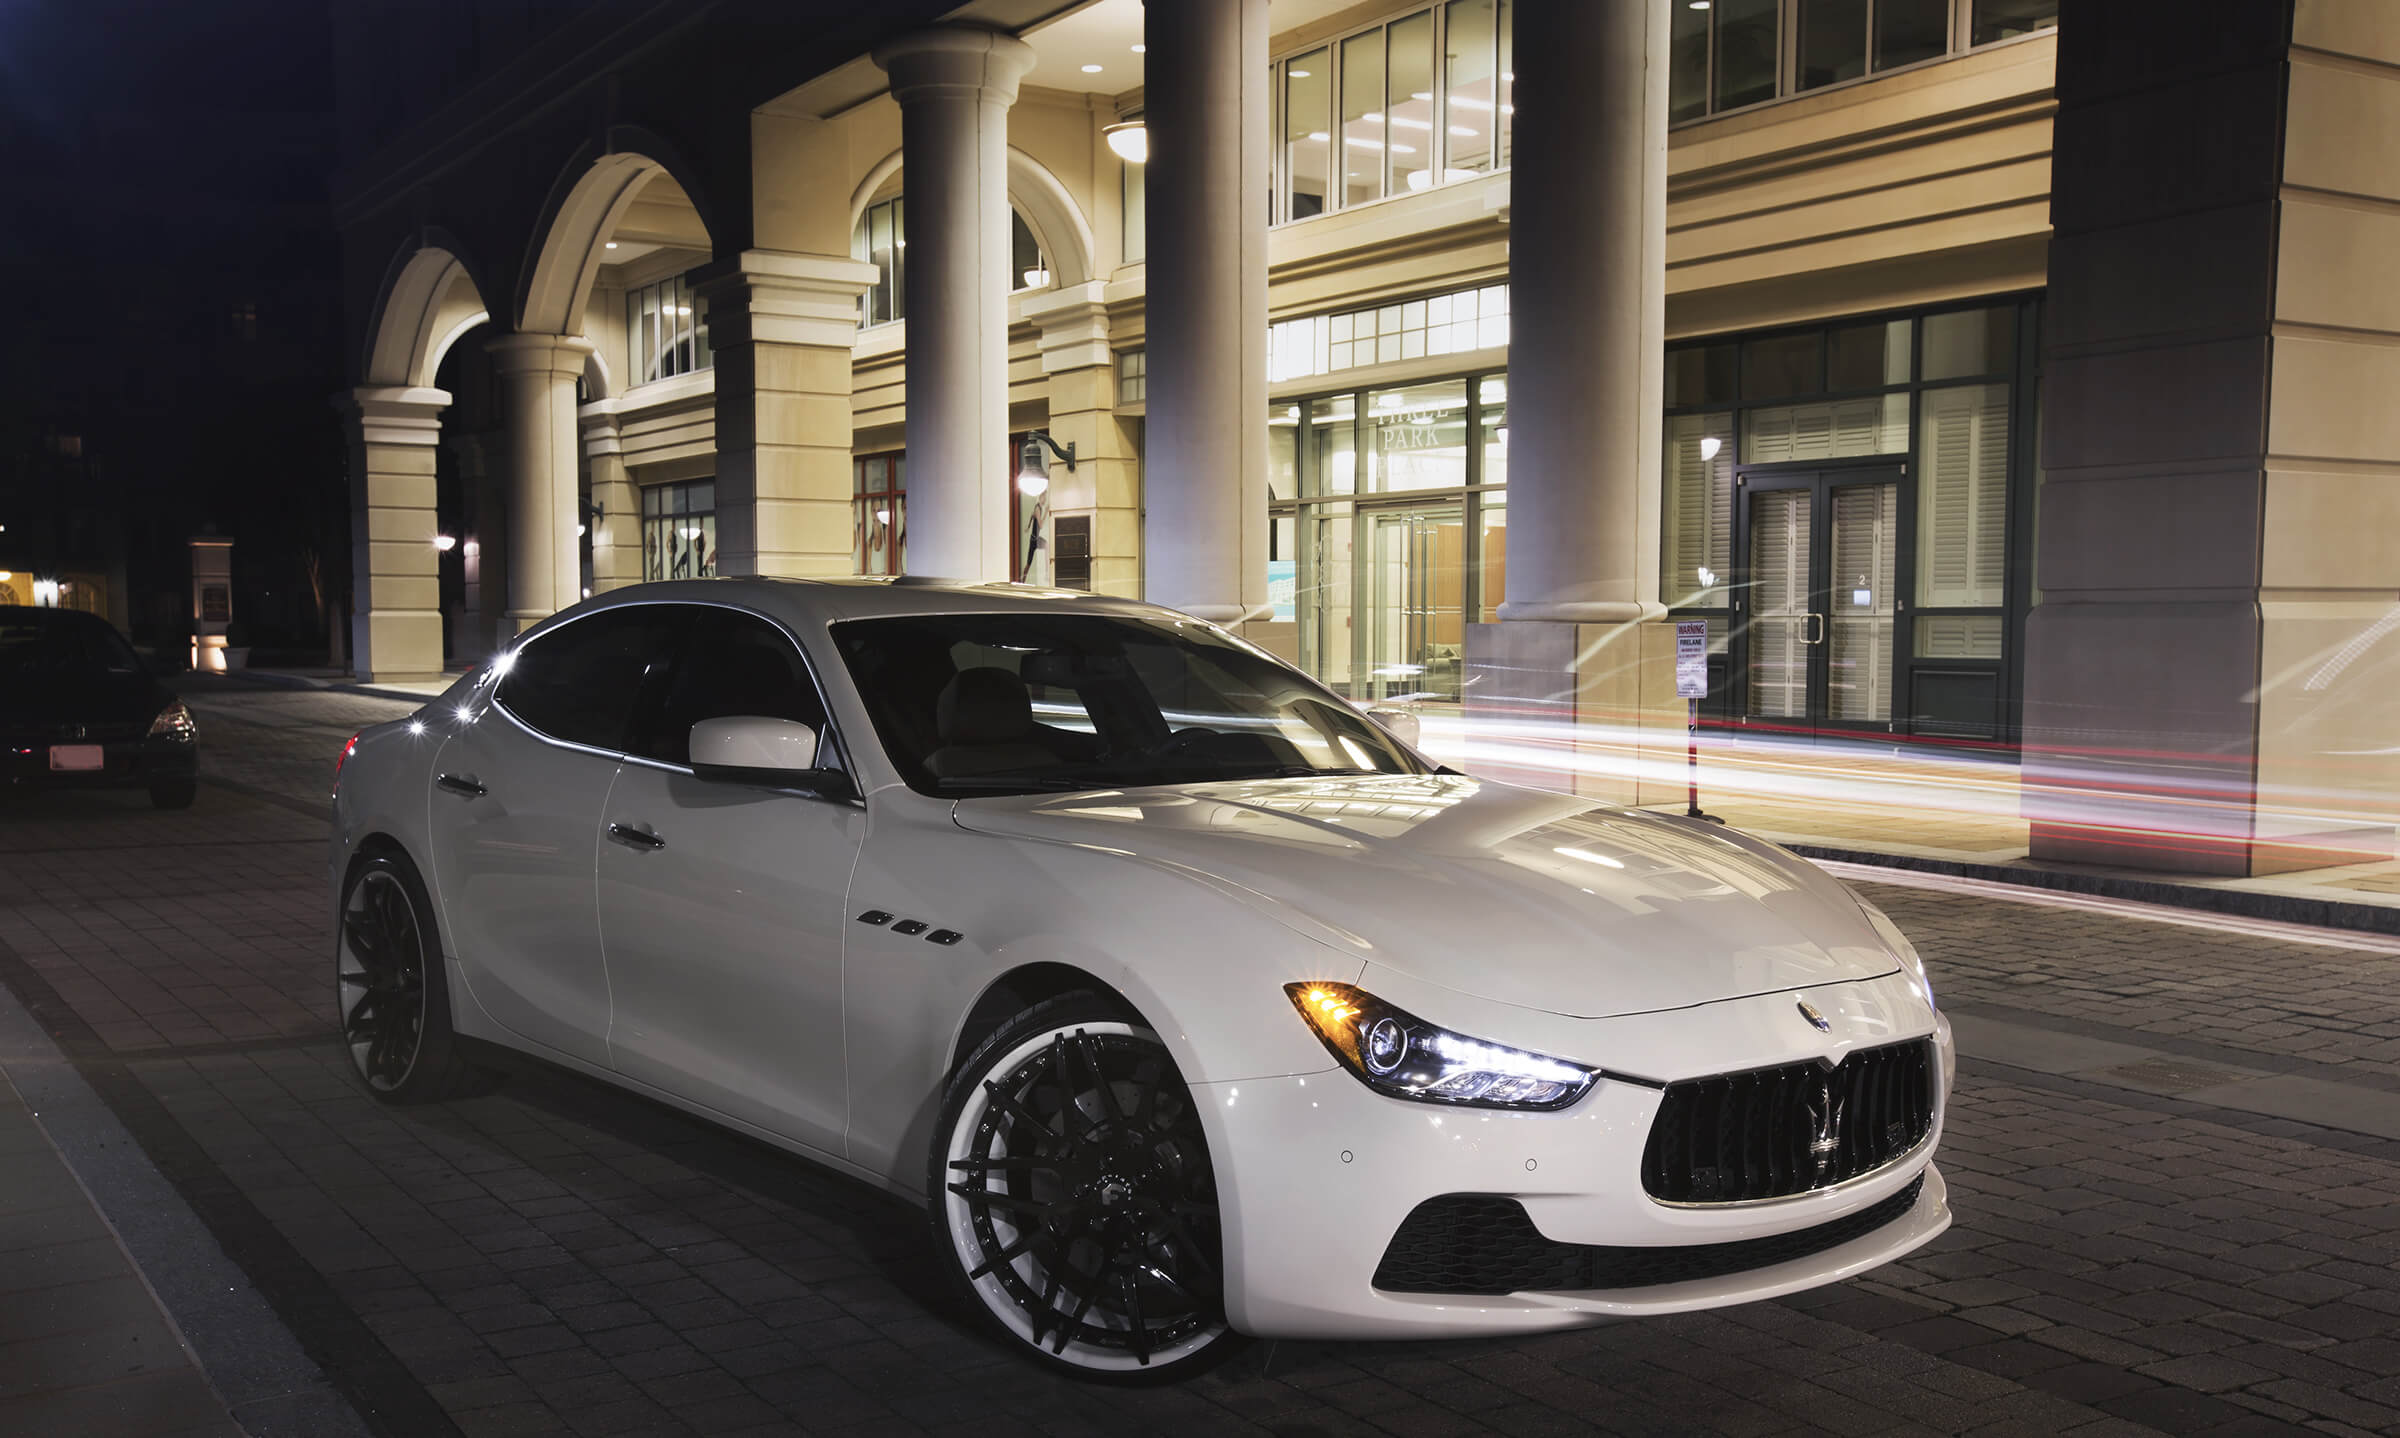 White Maserati with rims from Wheelz